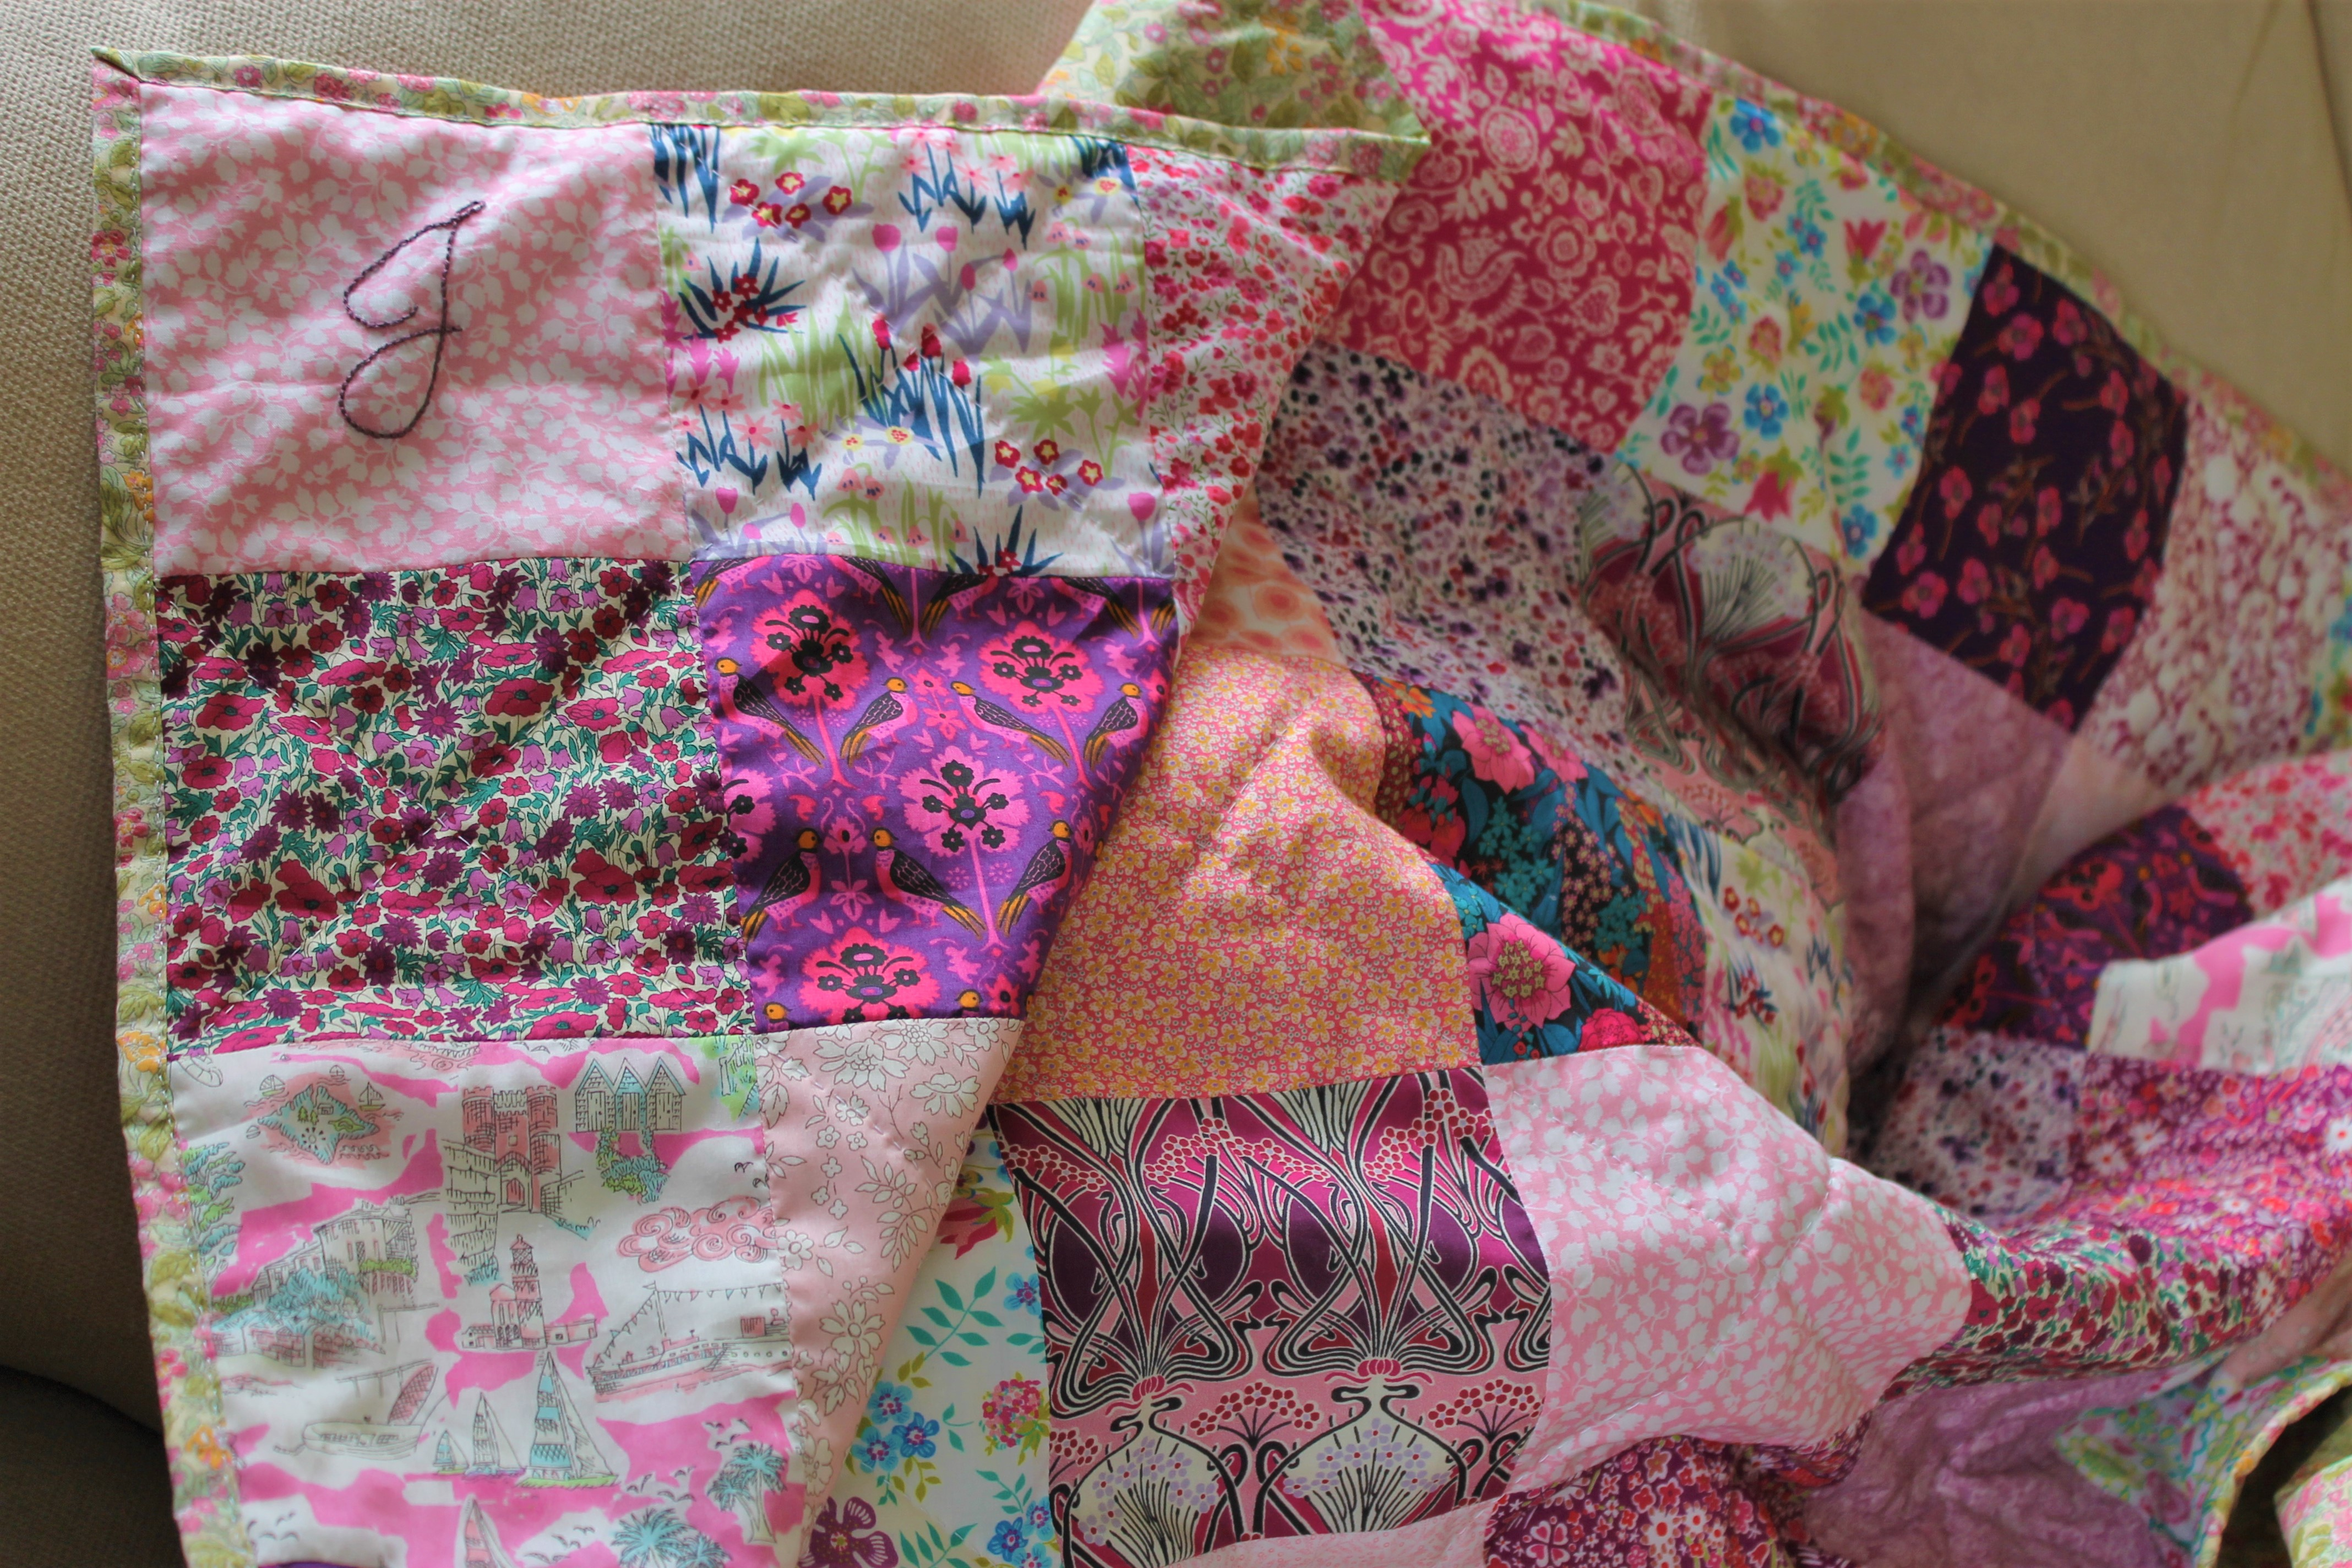 Jean's Birthday Quilt – A Beginners Guide to Quilting Part 3